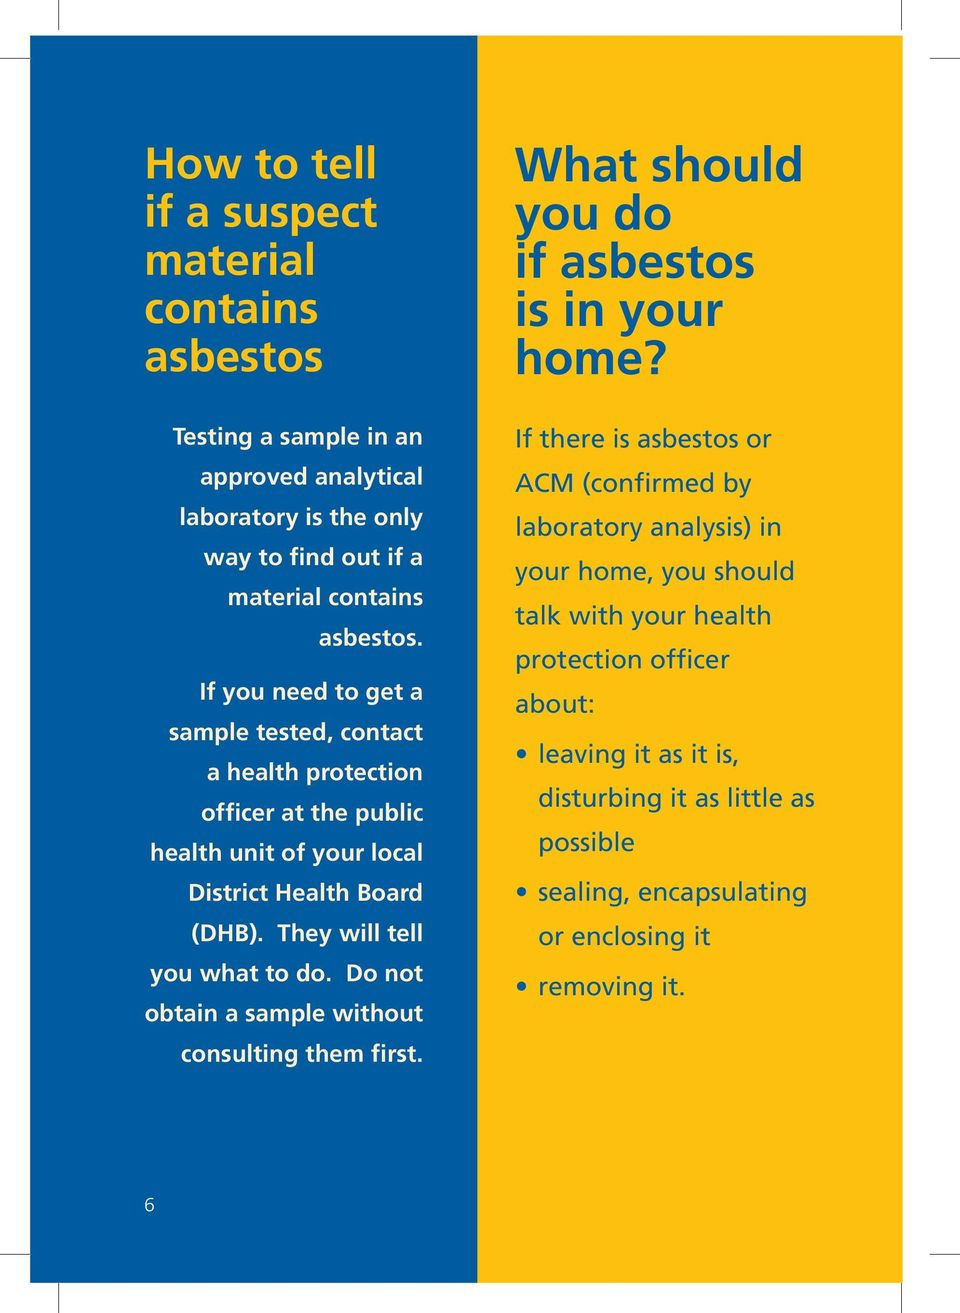 Do not obtain a sample without consulting them first. What should you do if asbestos is in your home?